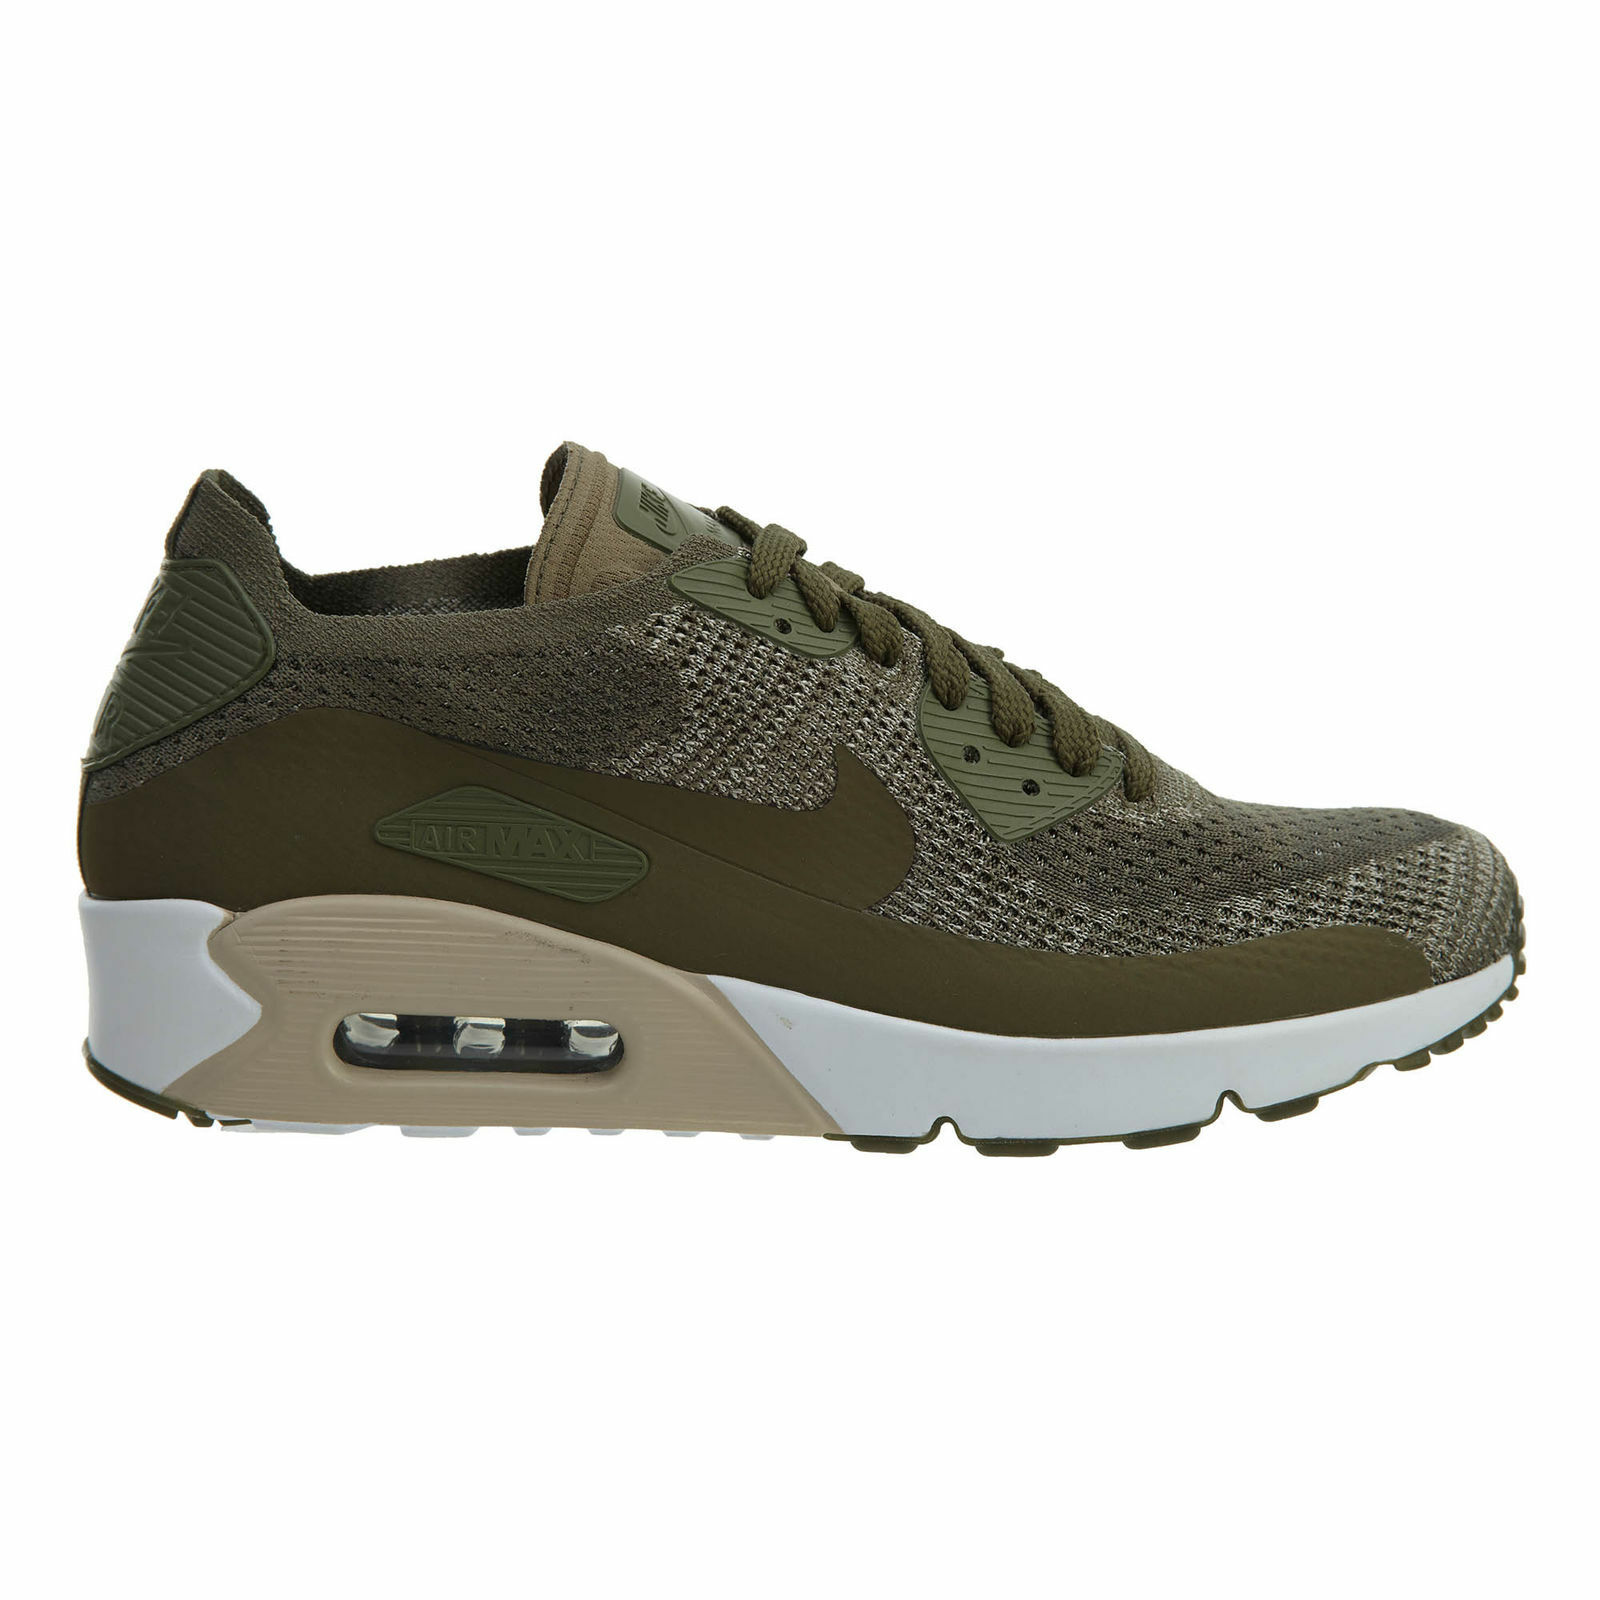 ccbcfed2acff Nike Air Air Air Max 90 Ultra 2.0 Flyknit Mens 875943-200 Olive Running  Shoes